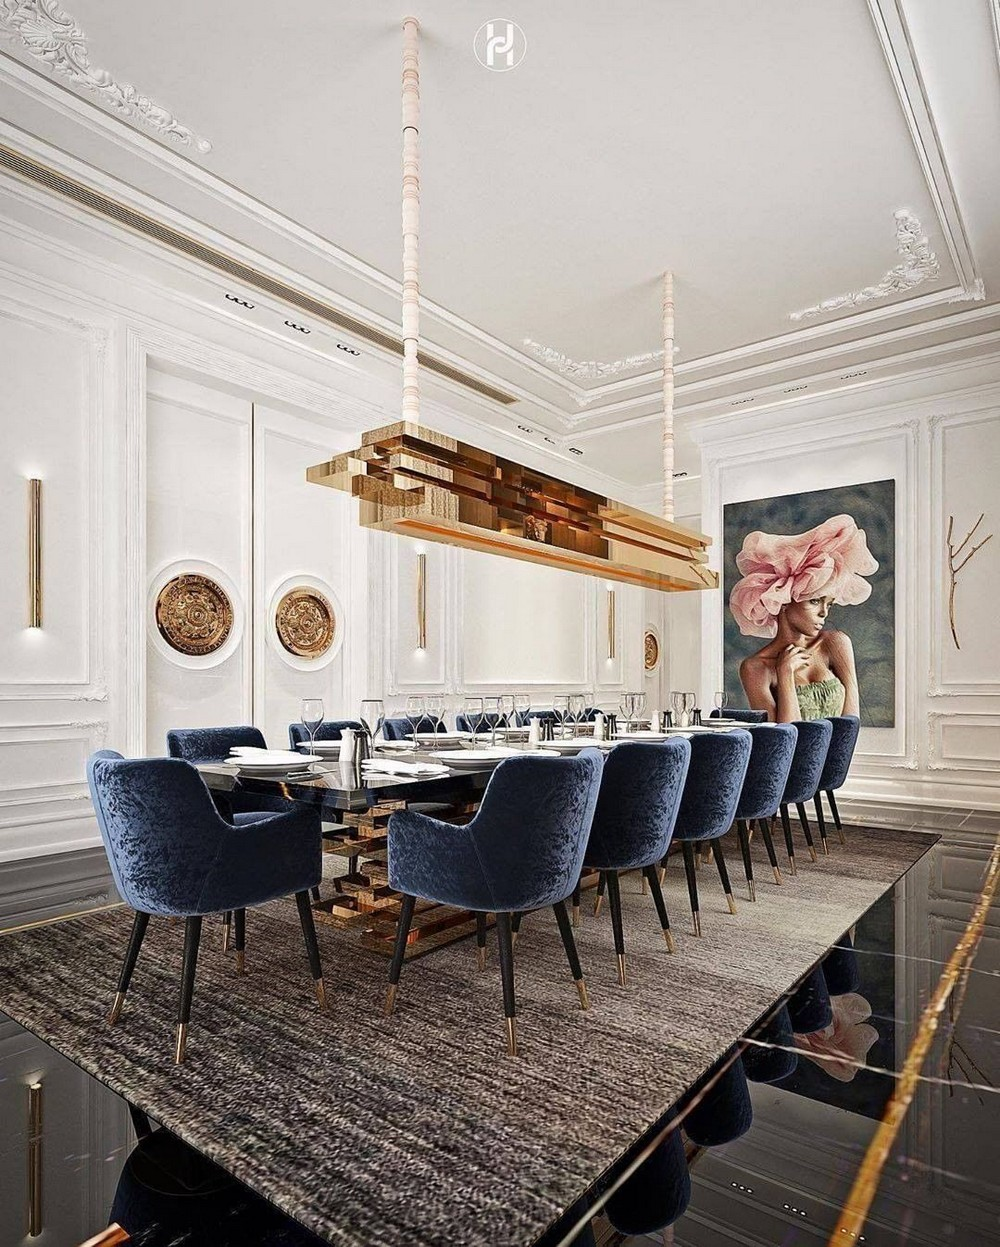 The Best Dining Room Designs You Will Find On Instagram